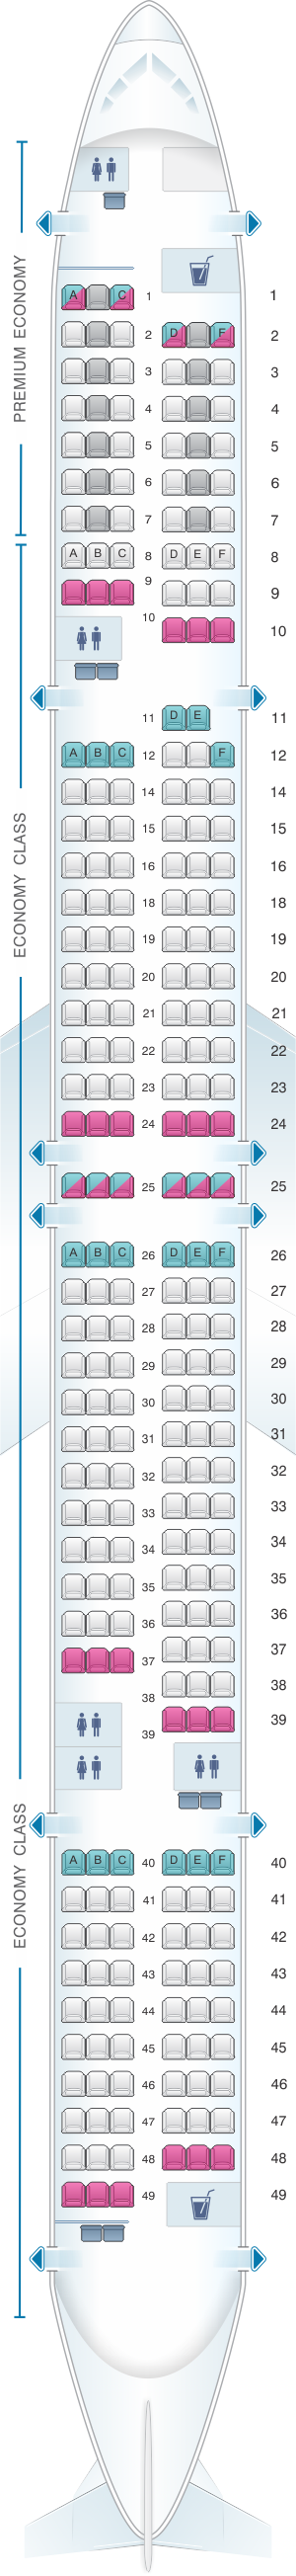 Seat map for Condor Boeing B757 300